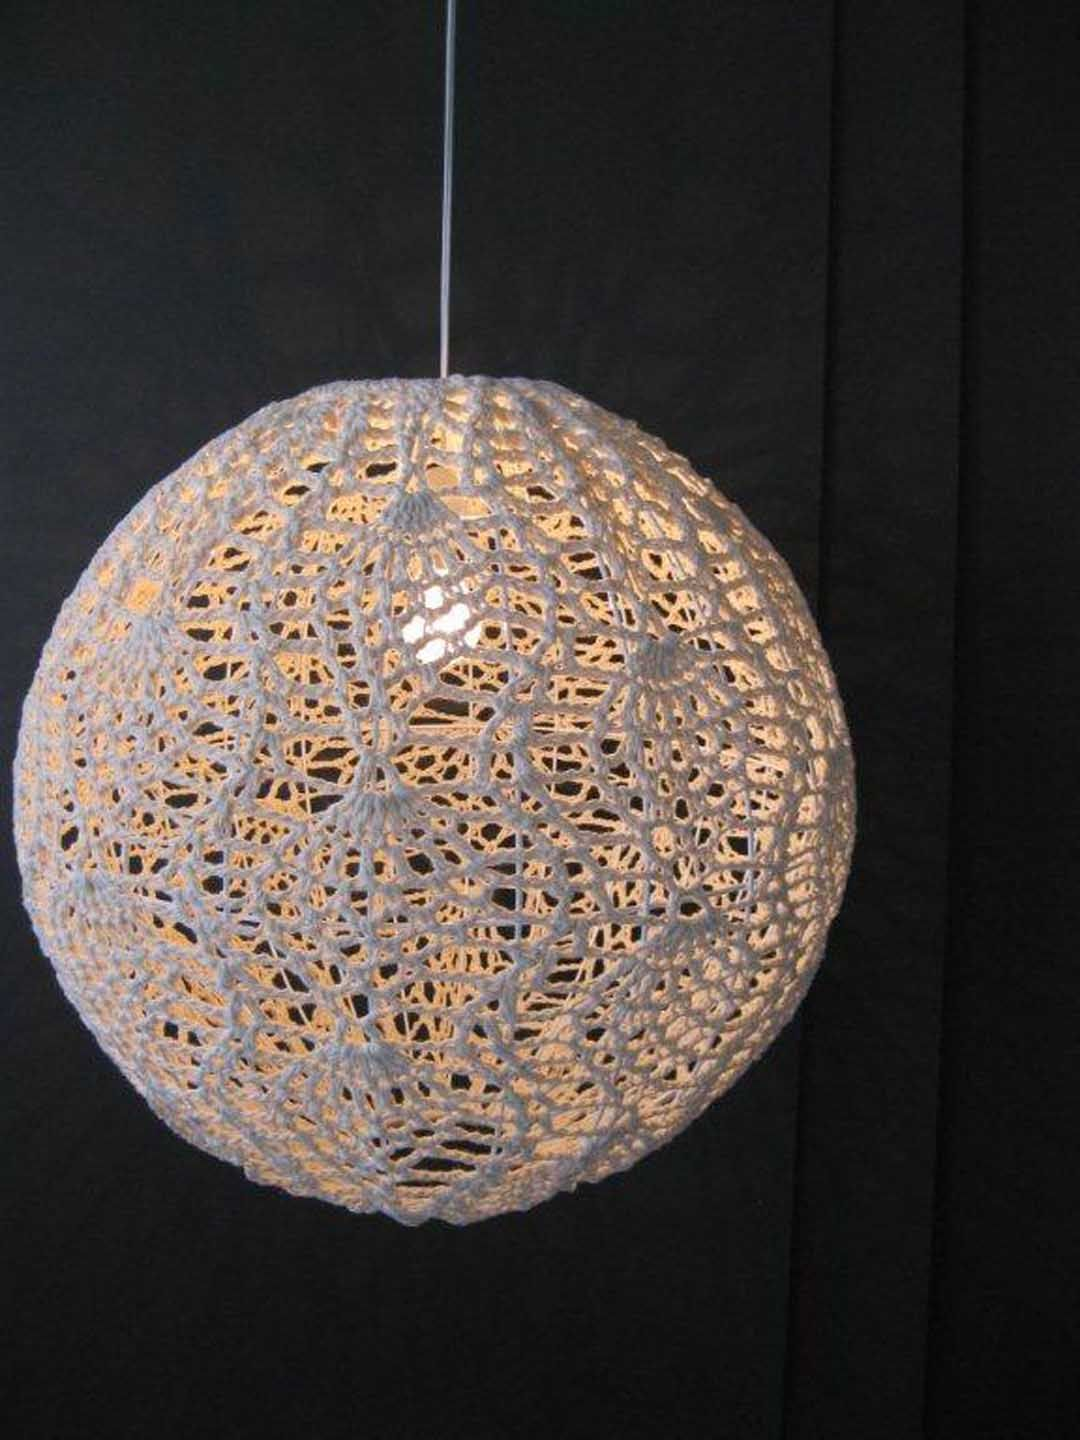 Crochet lampshade • Mum's Collection